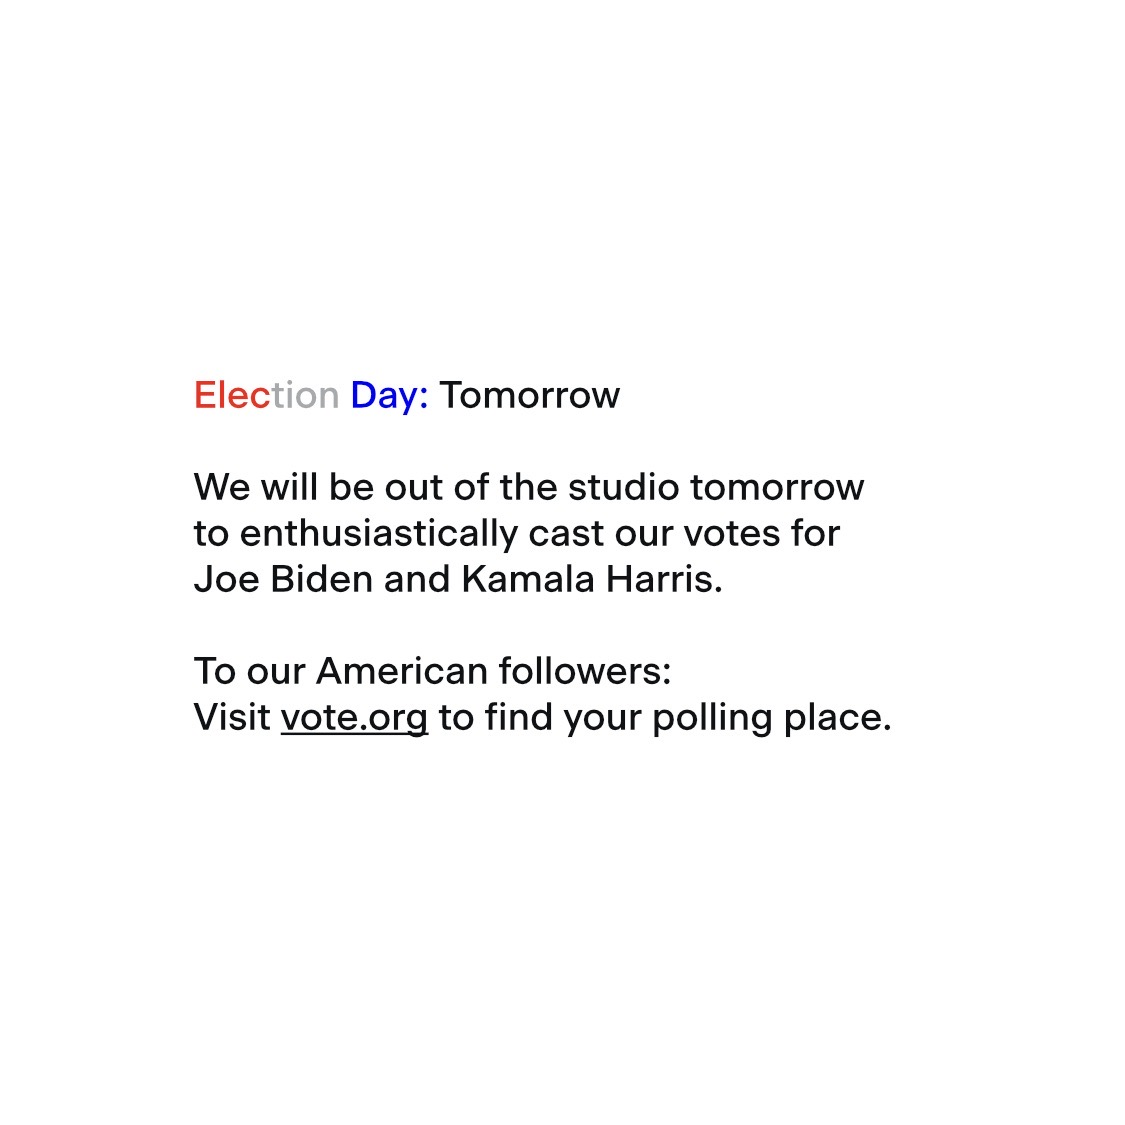 Election Day: Tomorrow